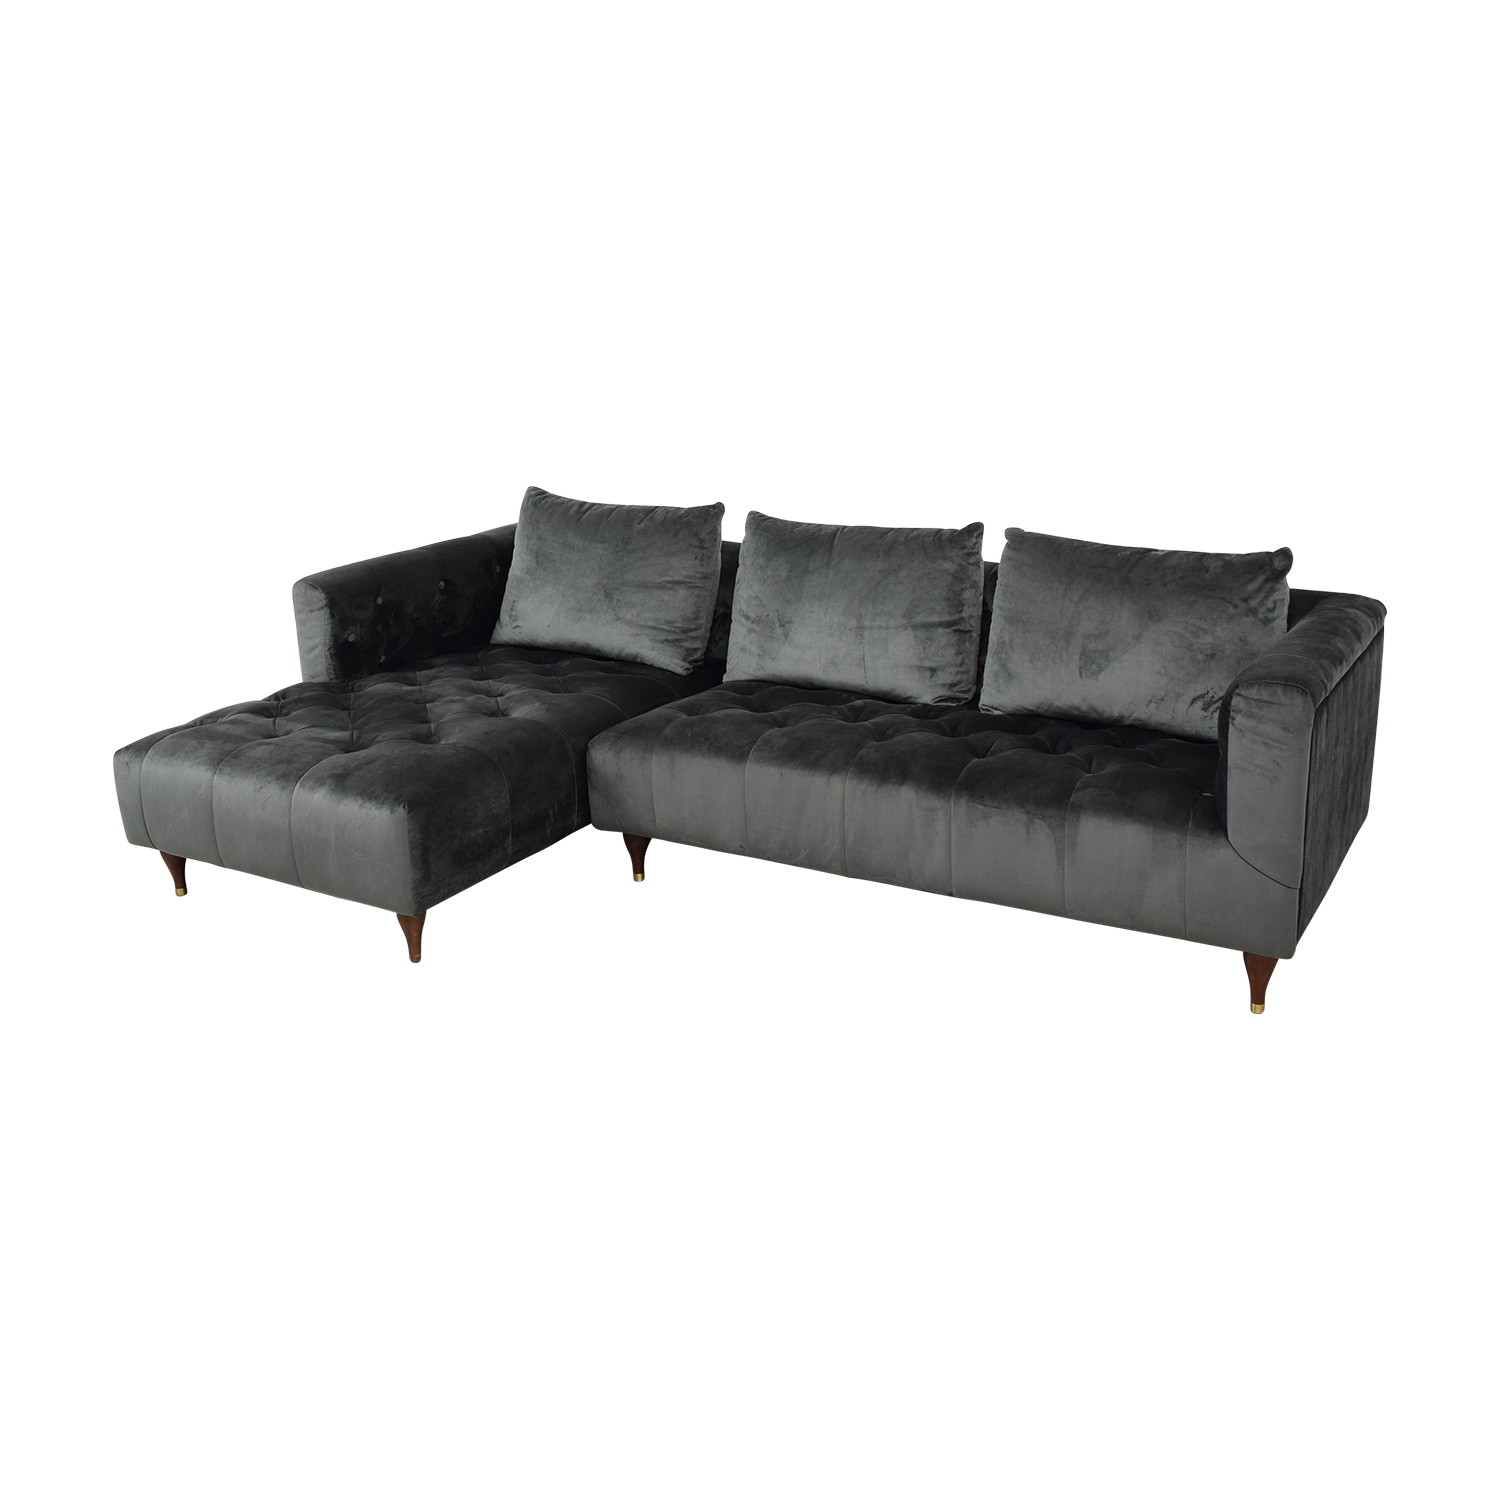 Interior Define Ms. Chesterfield Sectional Sofa with Left Chaise nyc